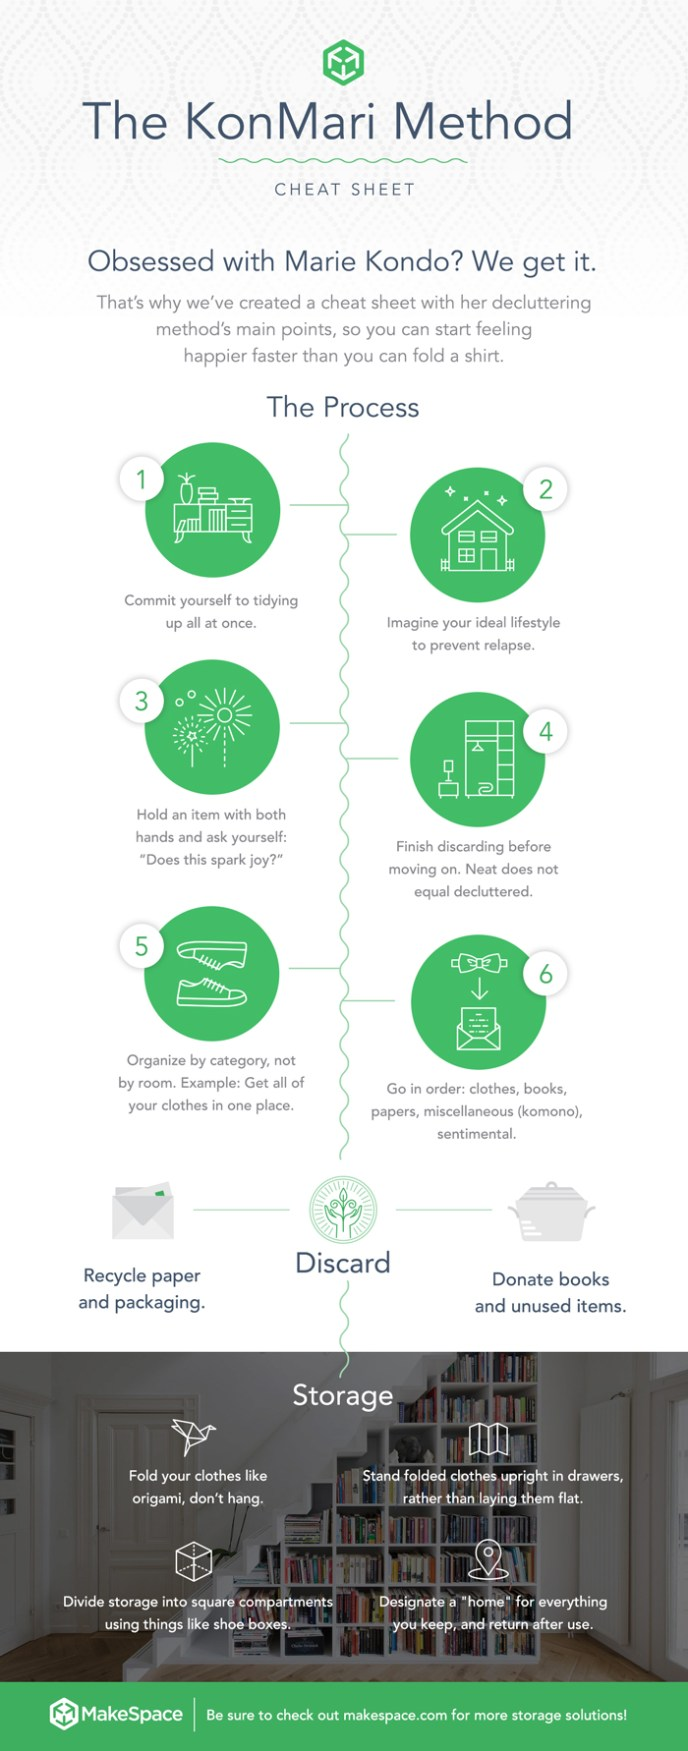 KonMari Cheat Sheet - steps for tidying up your home